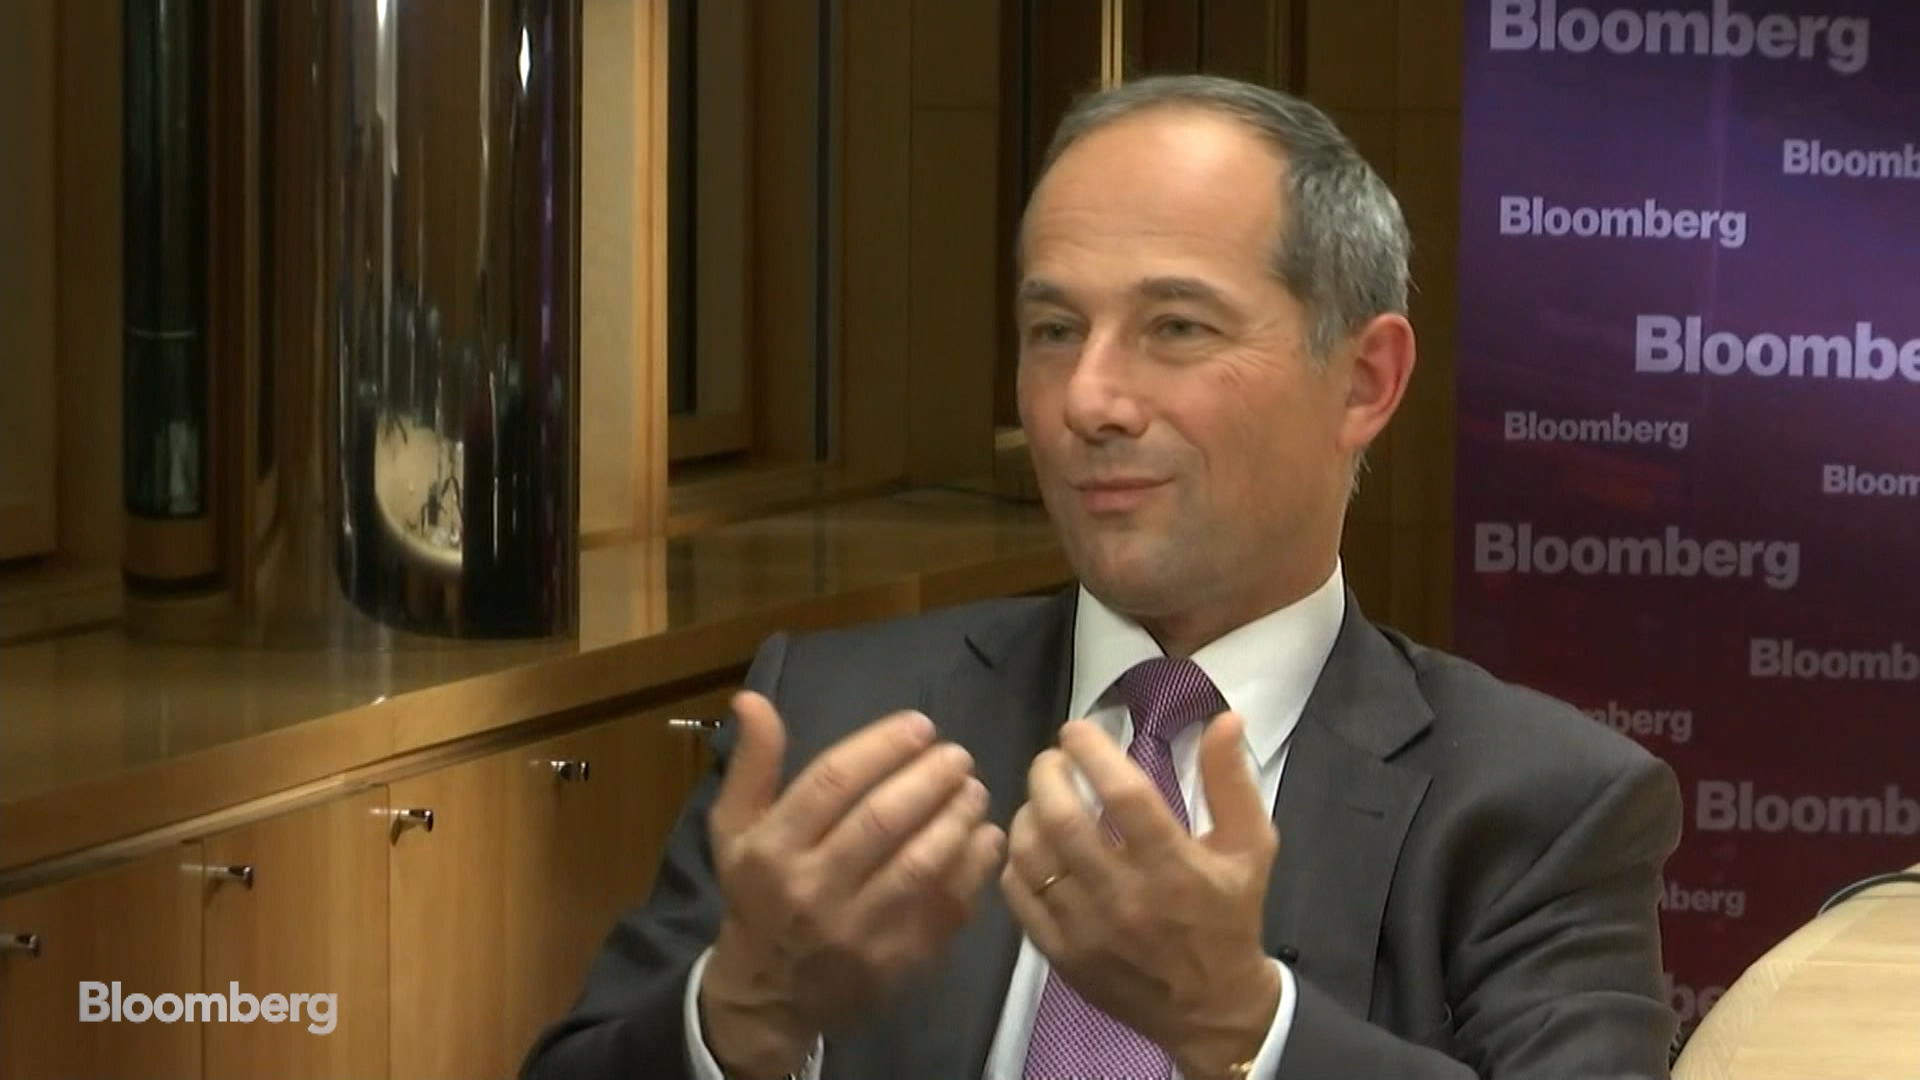 SocGen to Shrink Trading Unit, Cut Costs After Market Rout